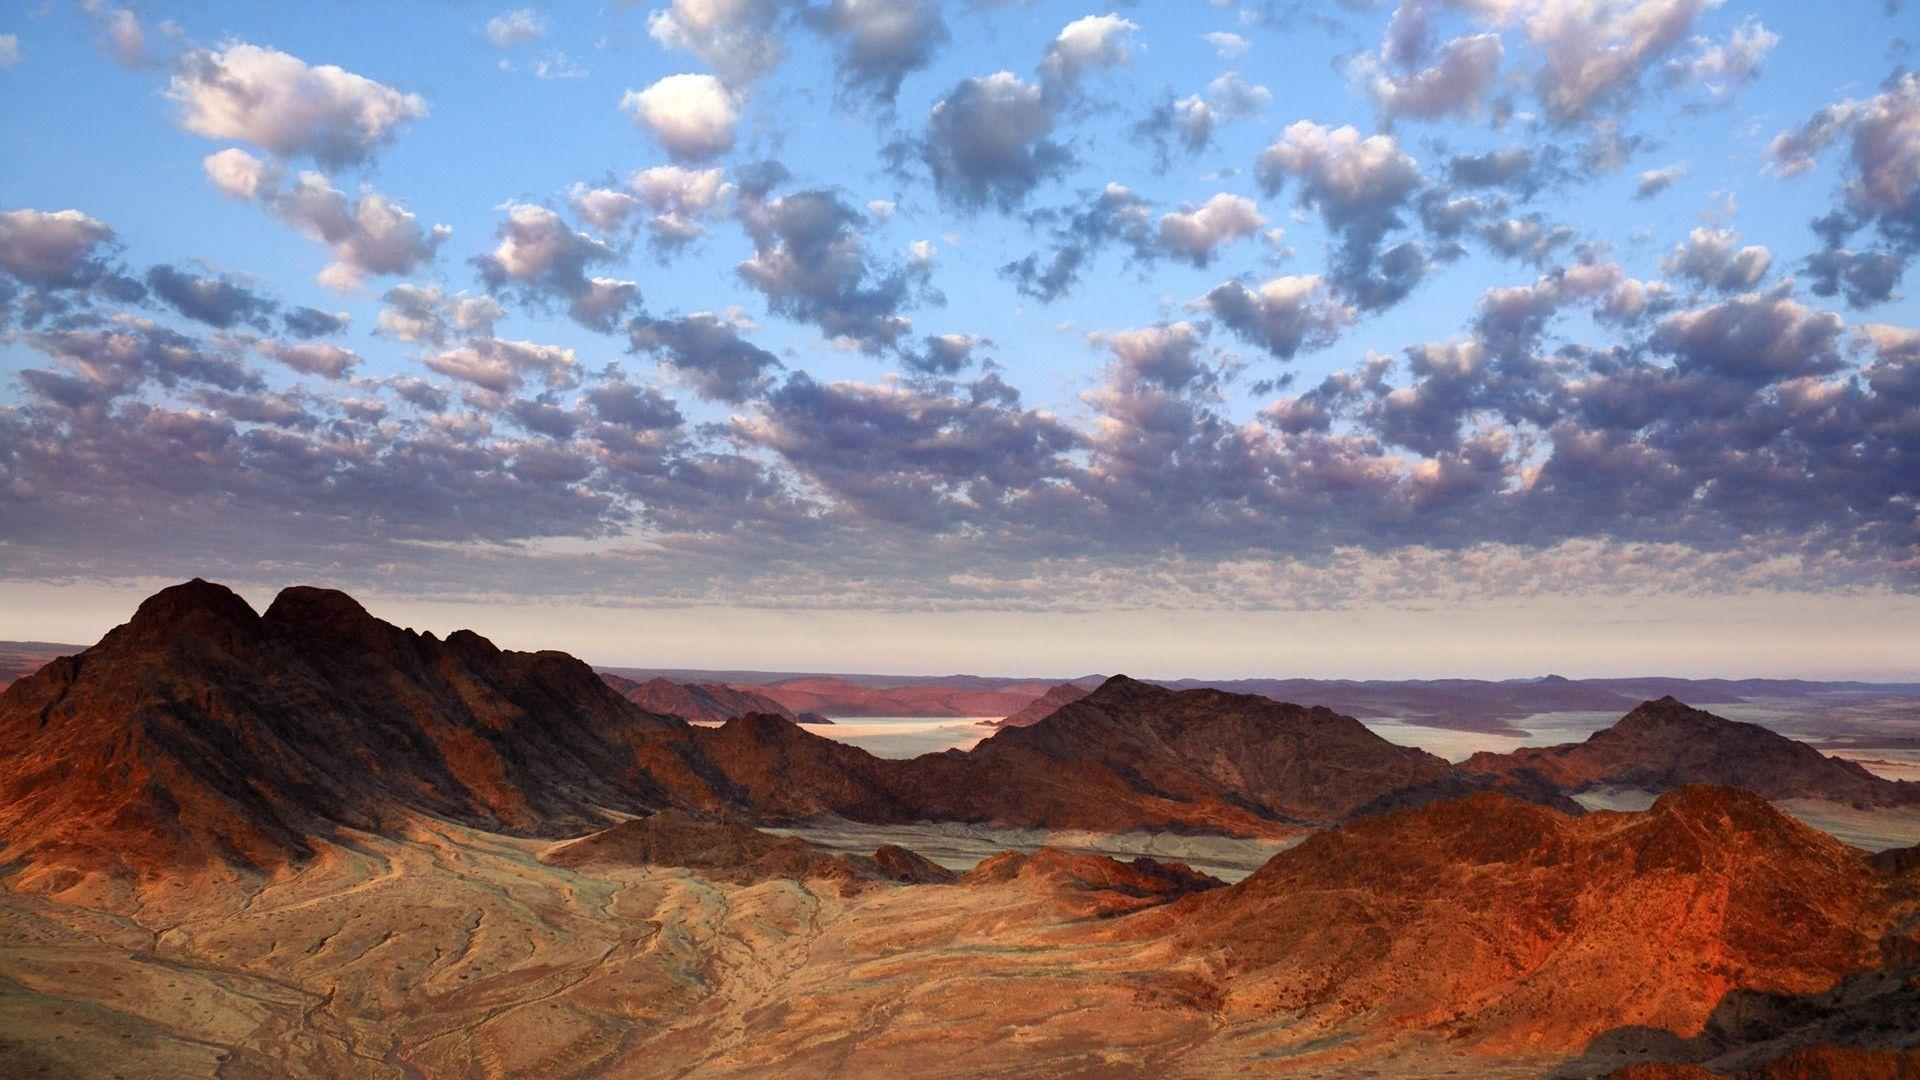 Desert view namibia africa wallpaper | AllWallpaper.in #9763 | PC | en